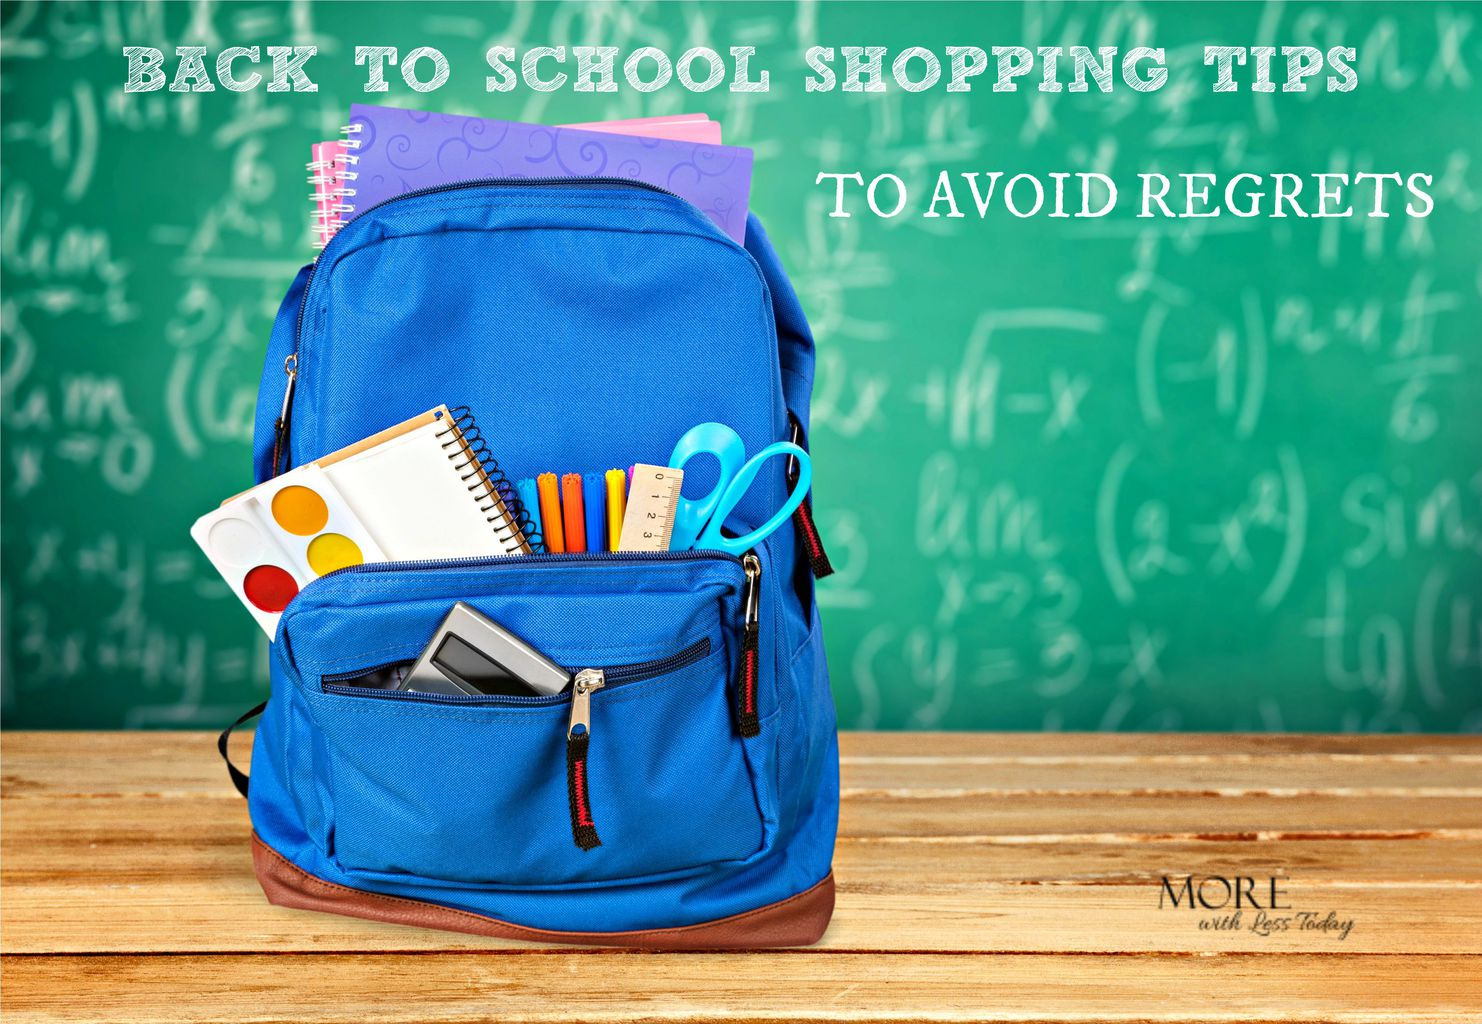 back to school shopping tips, smart shopping for back to school to avoid regrets, what to buy for back to school, tips for saving money for back to school